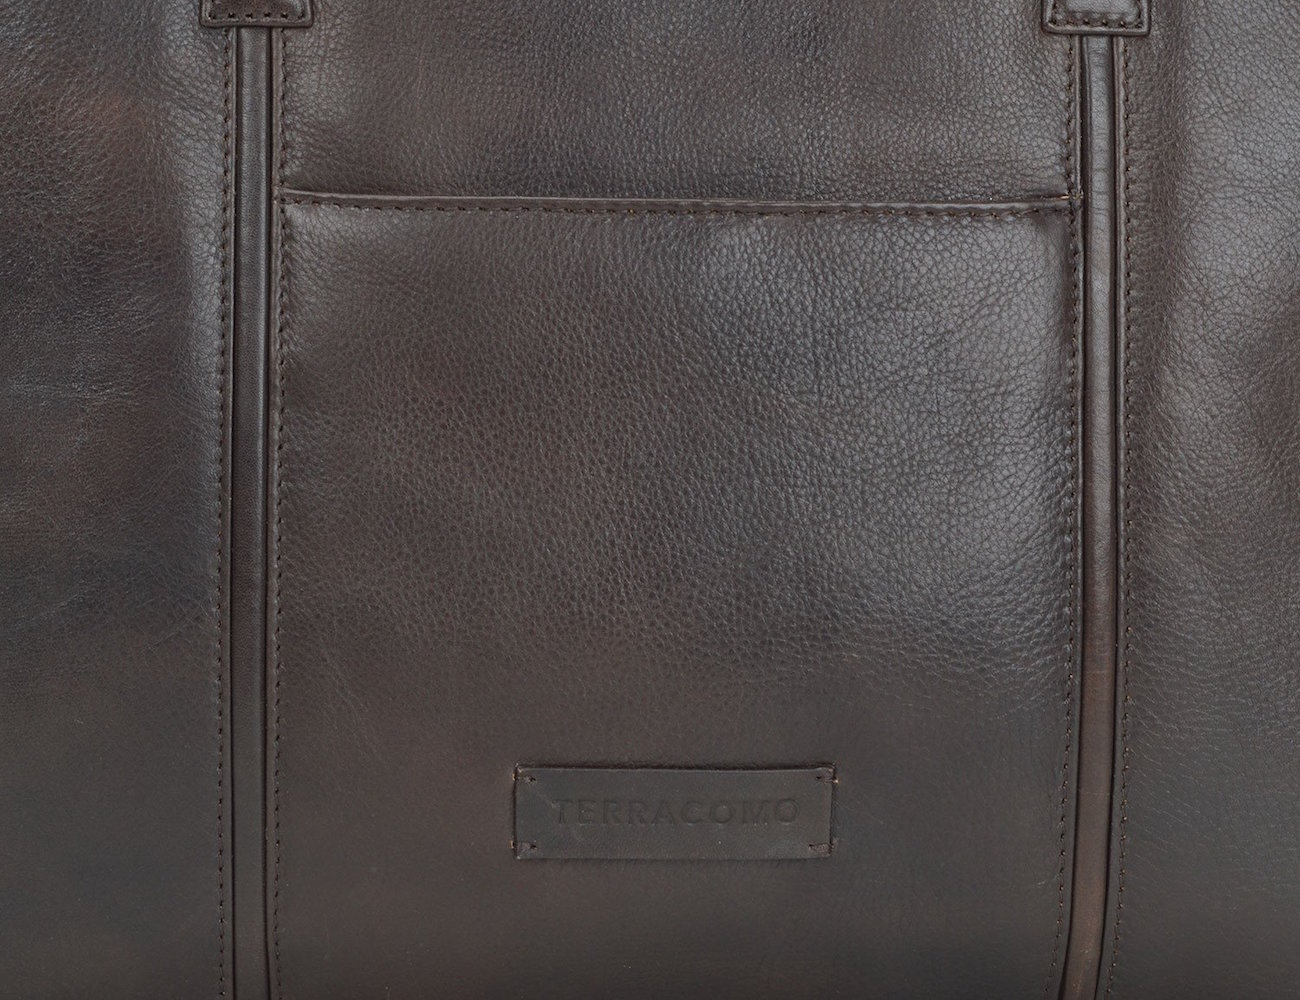 Terracomo Gerard Slim Leather Briefcase